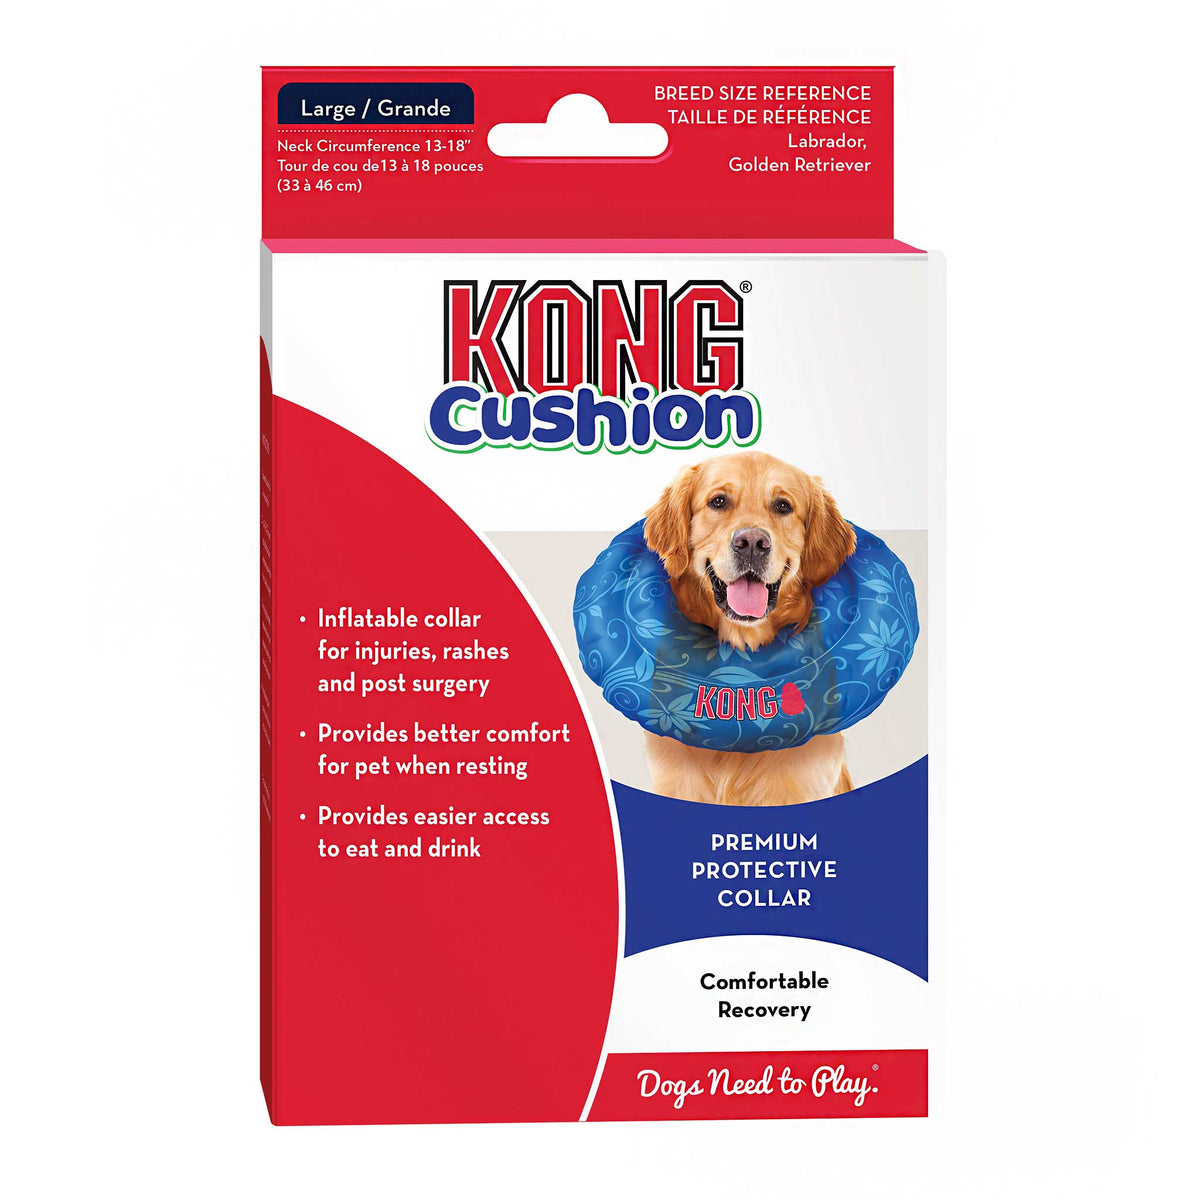 KONG Cushion Inflatable Recovery Collar